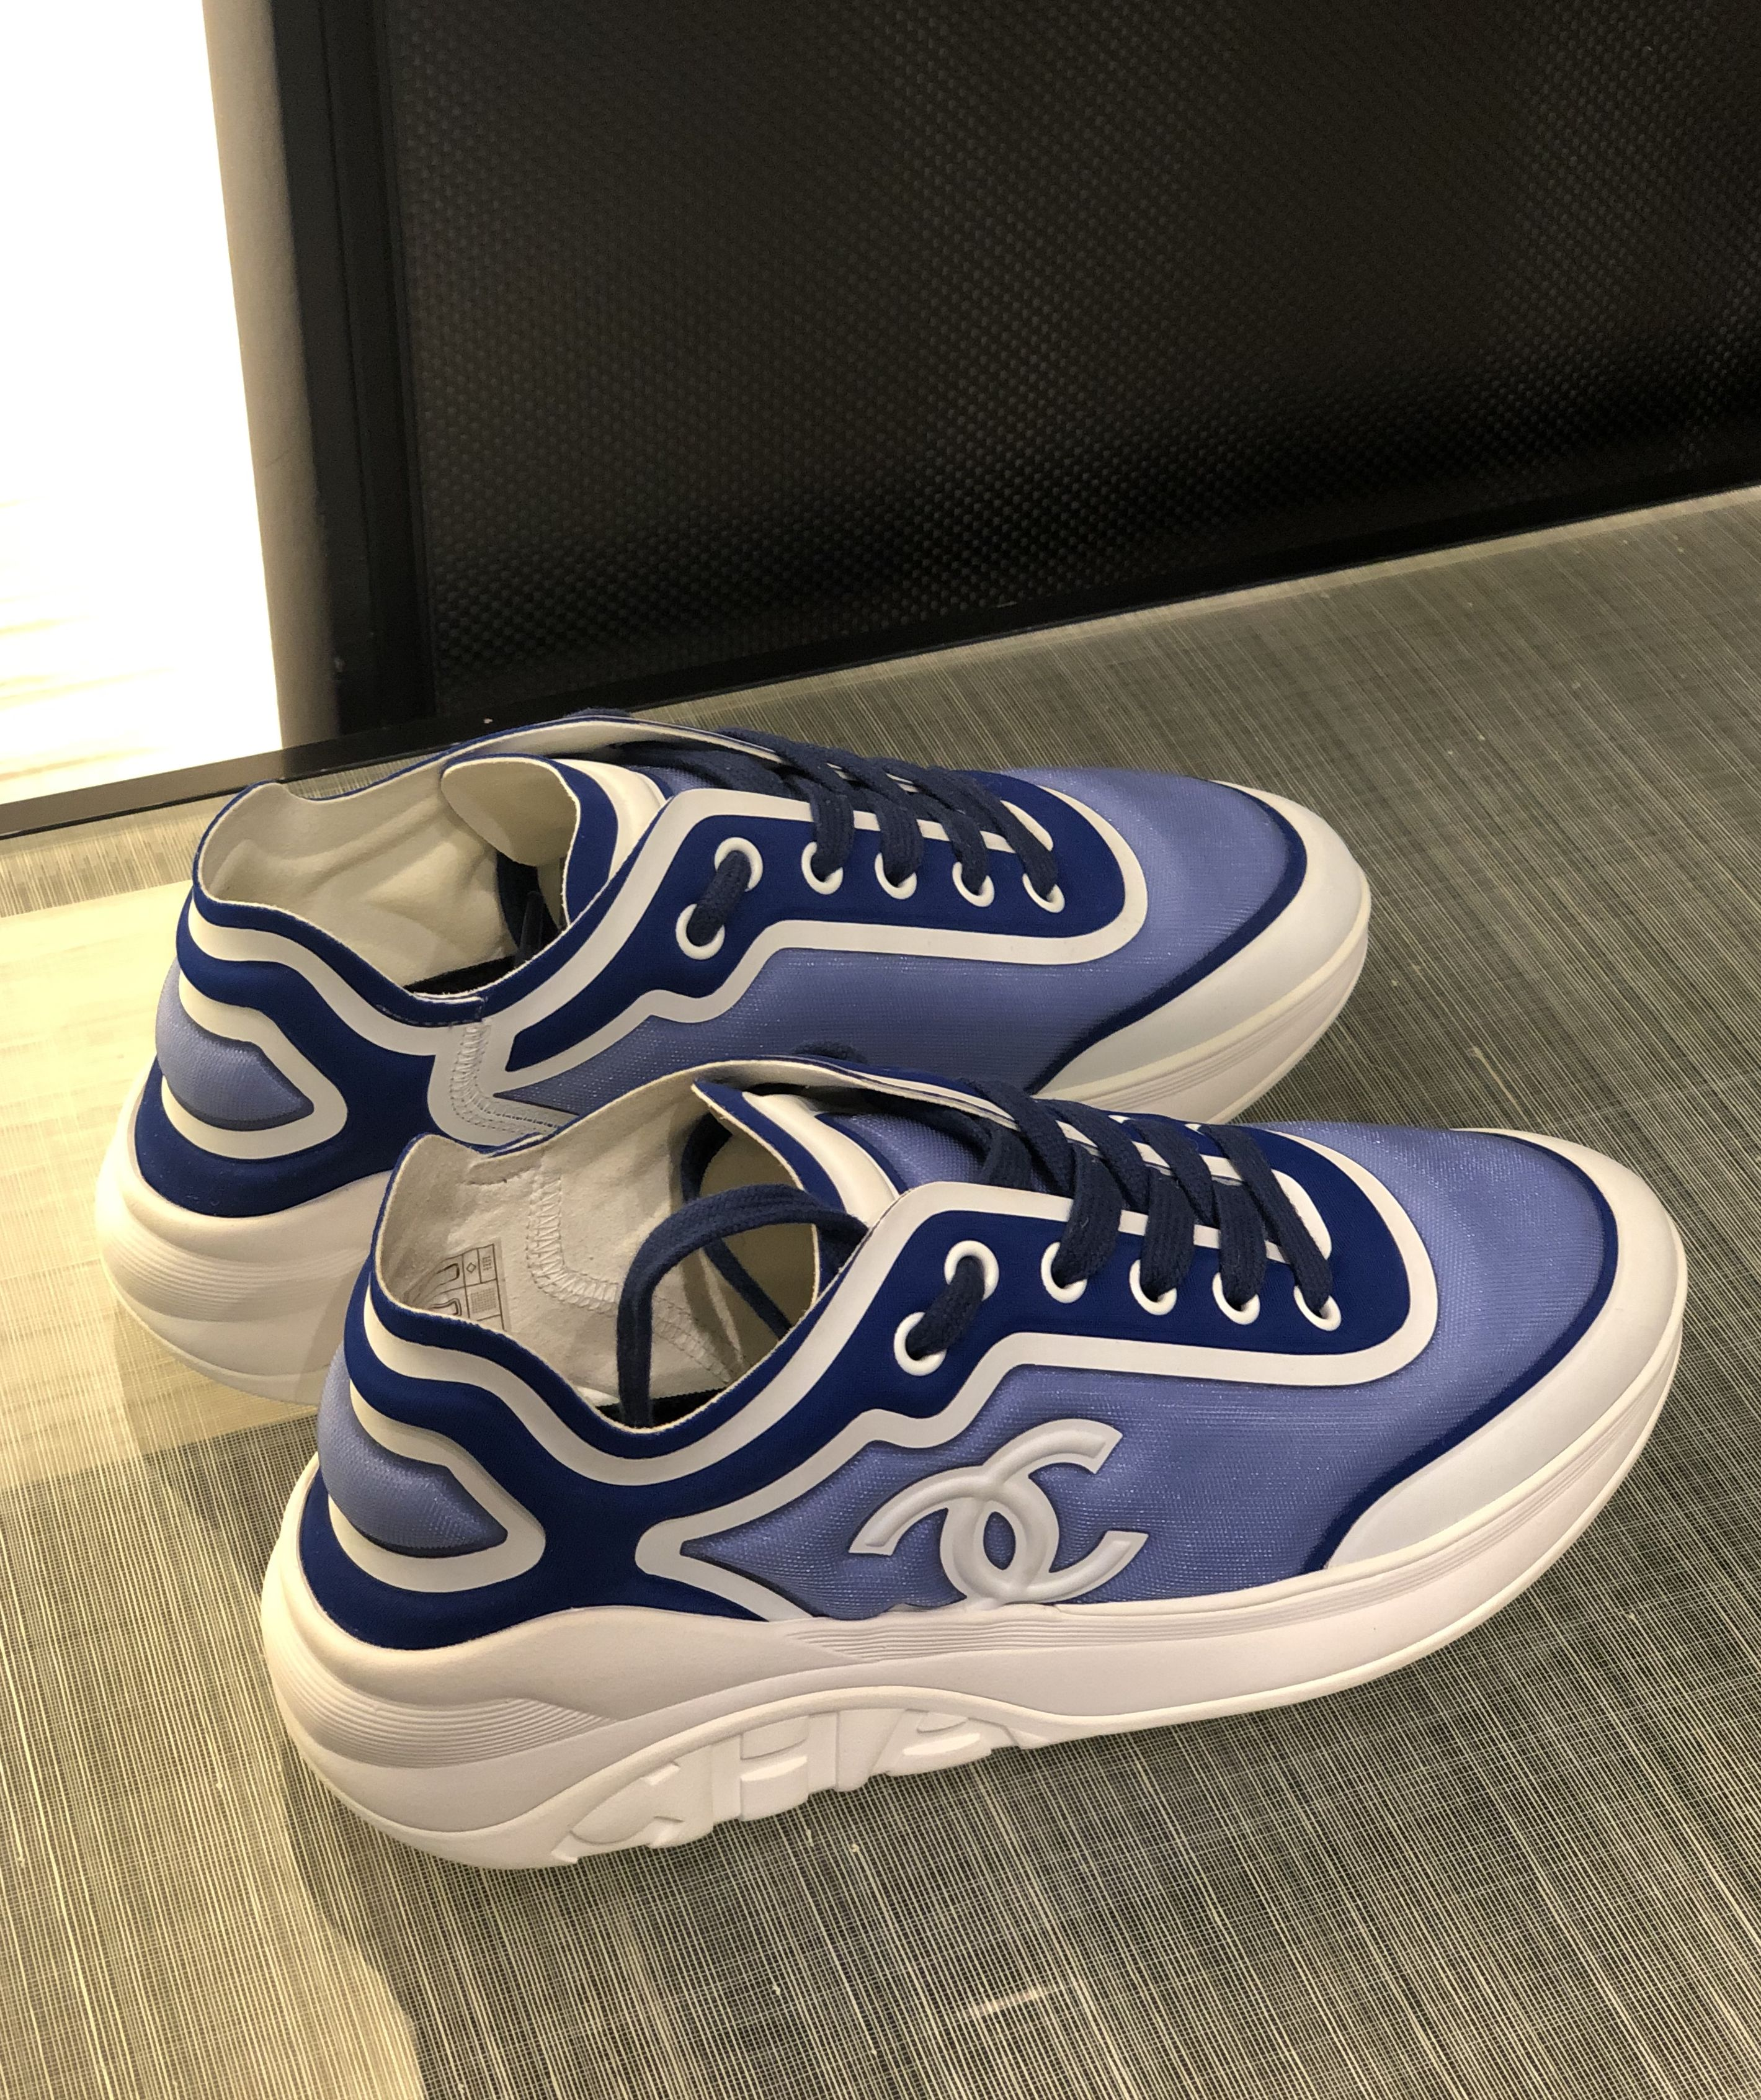 Chanel sneakers, Blue trainers